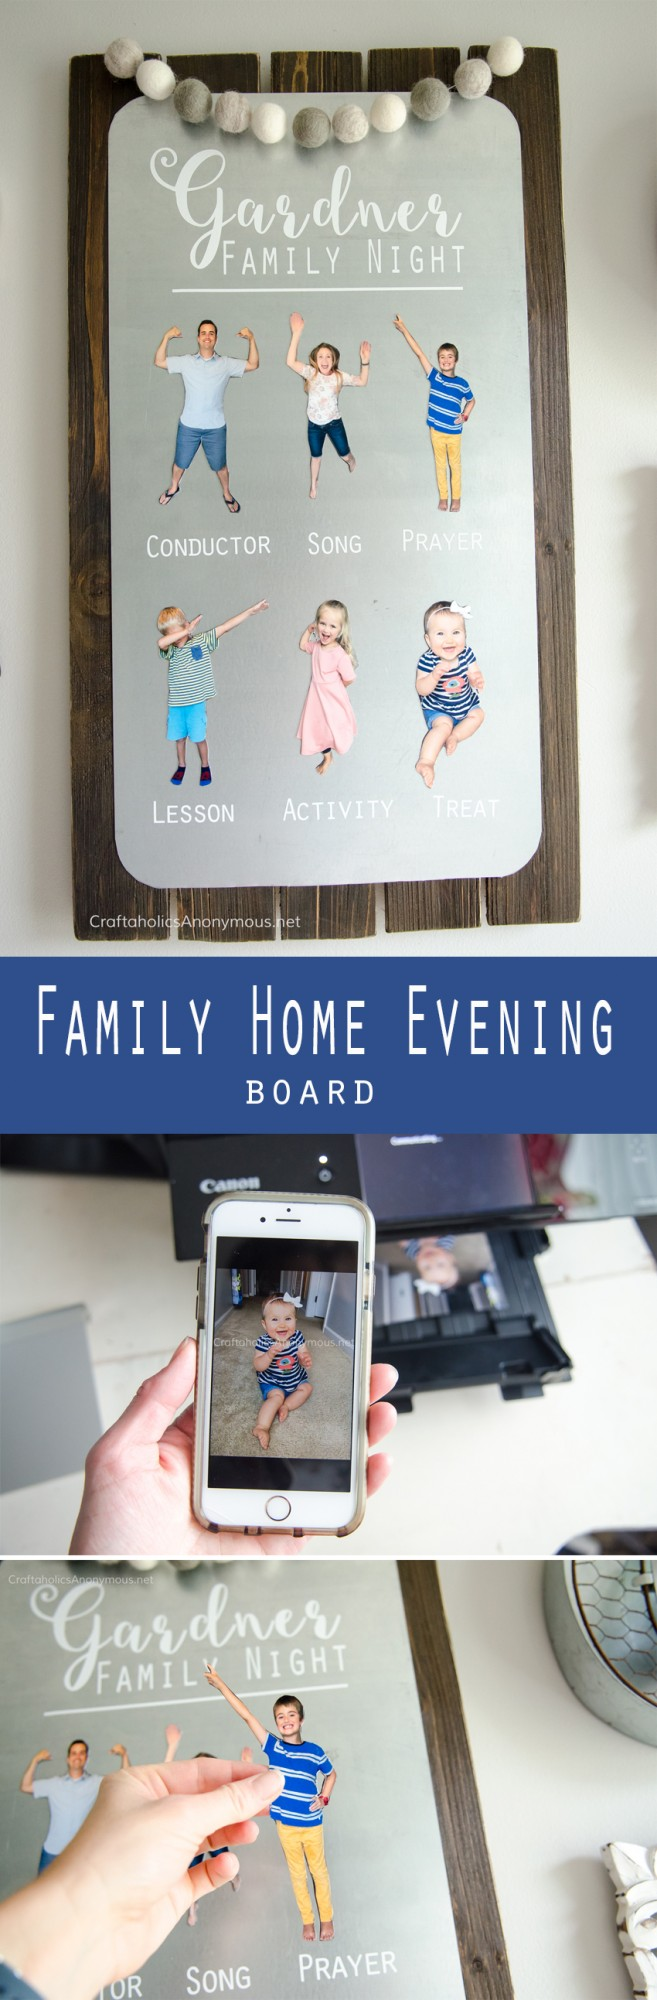 DIY FHE Board tutorial. Such a great idea to make people magnets!